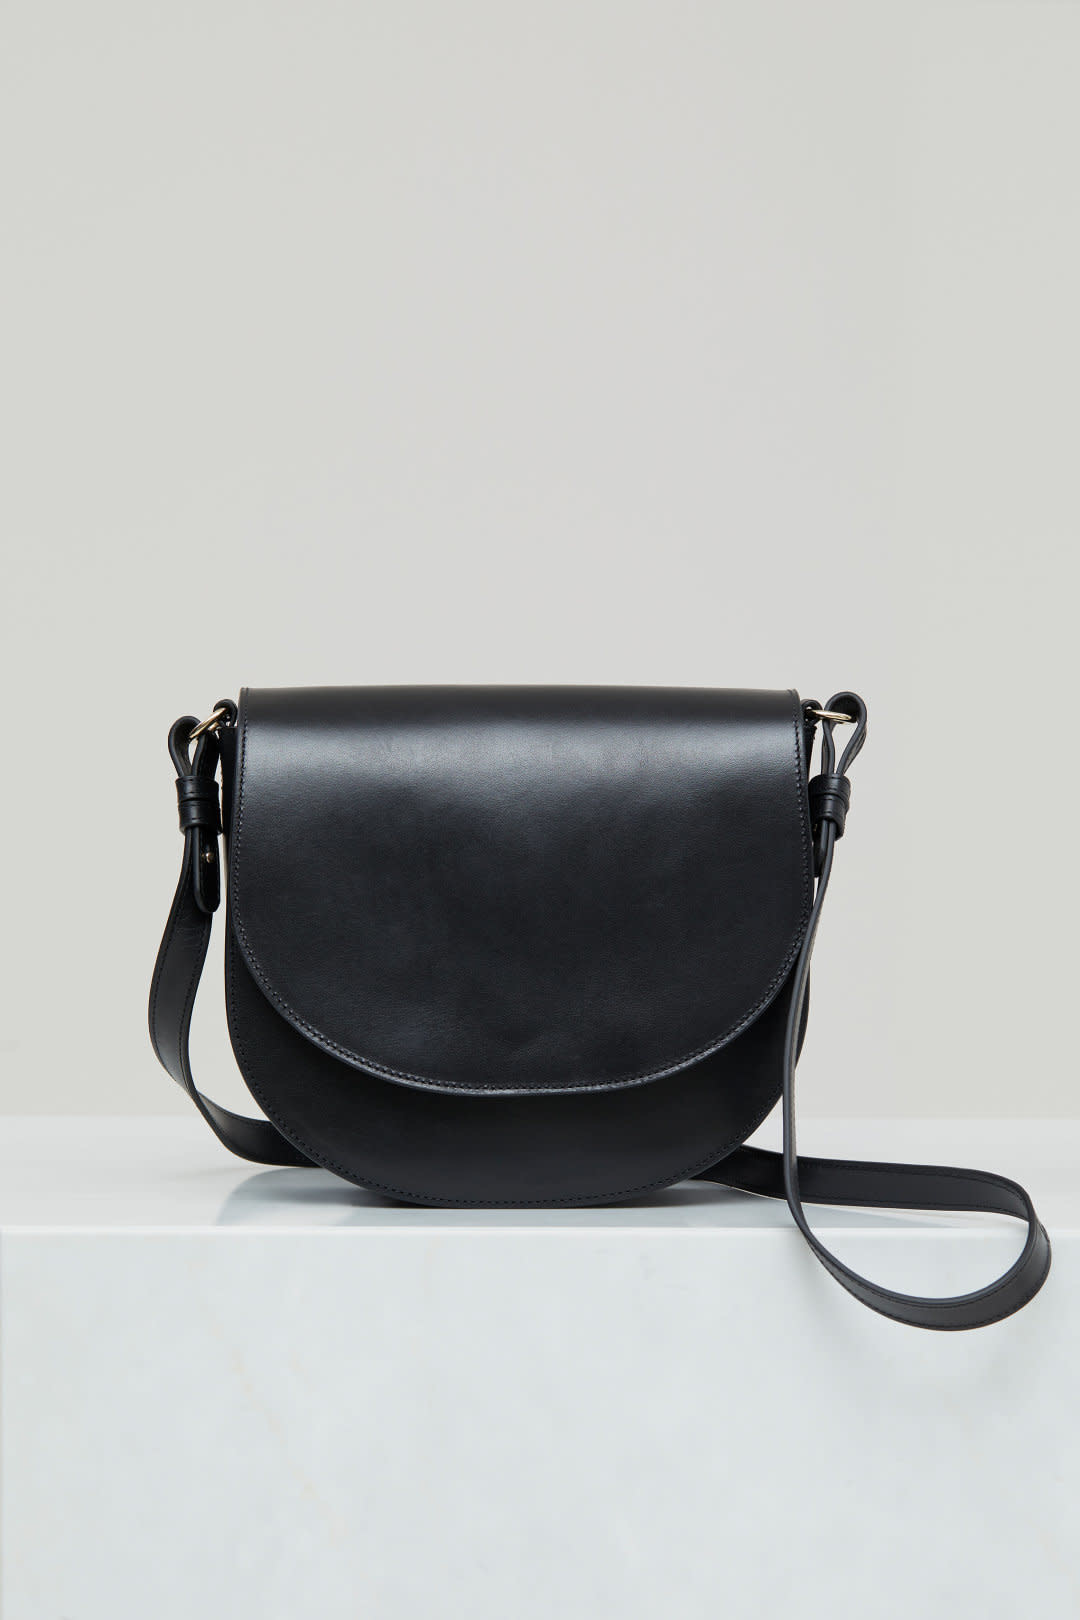 Ally M bag Black leather incl strap-8